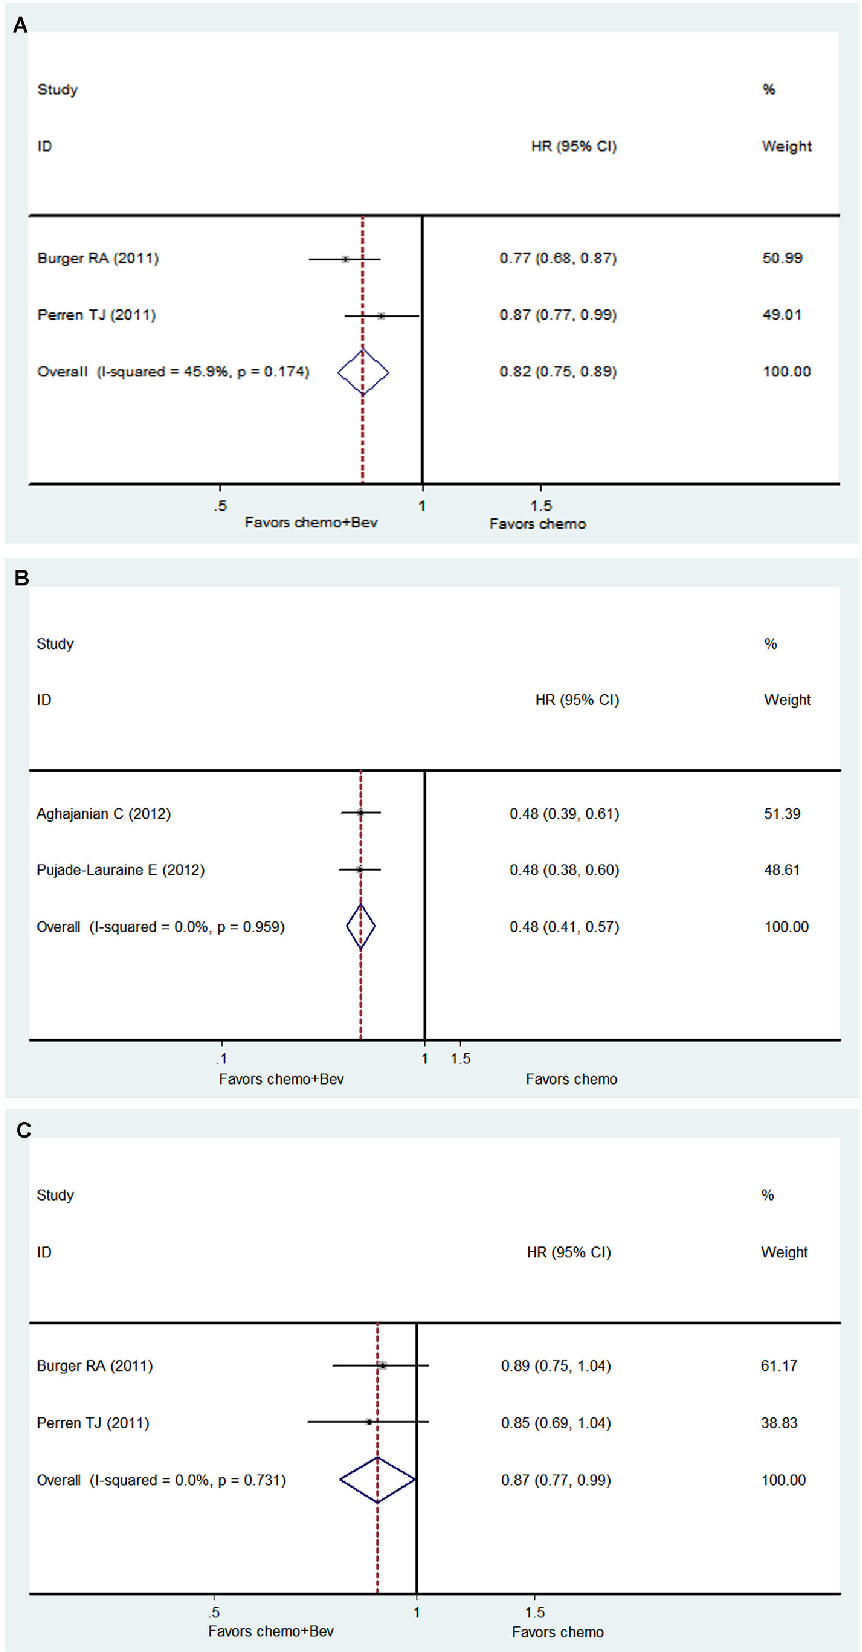 Phase Iii Trials Of Standard Chemotherapy With Or Without Bevacizumab For Ovarian Cancer A Meta Analysis Semantic Scholar